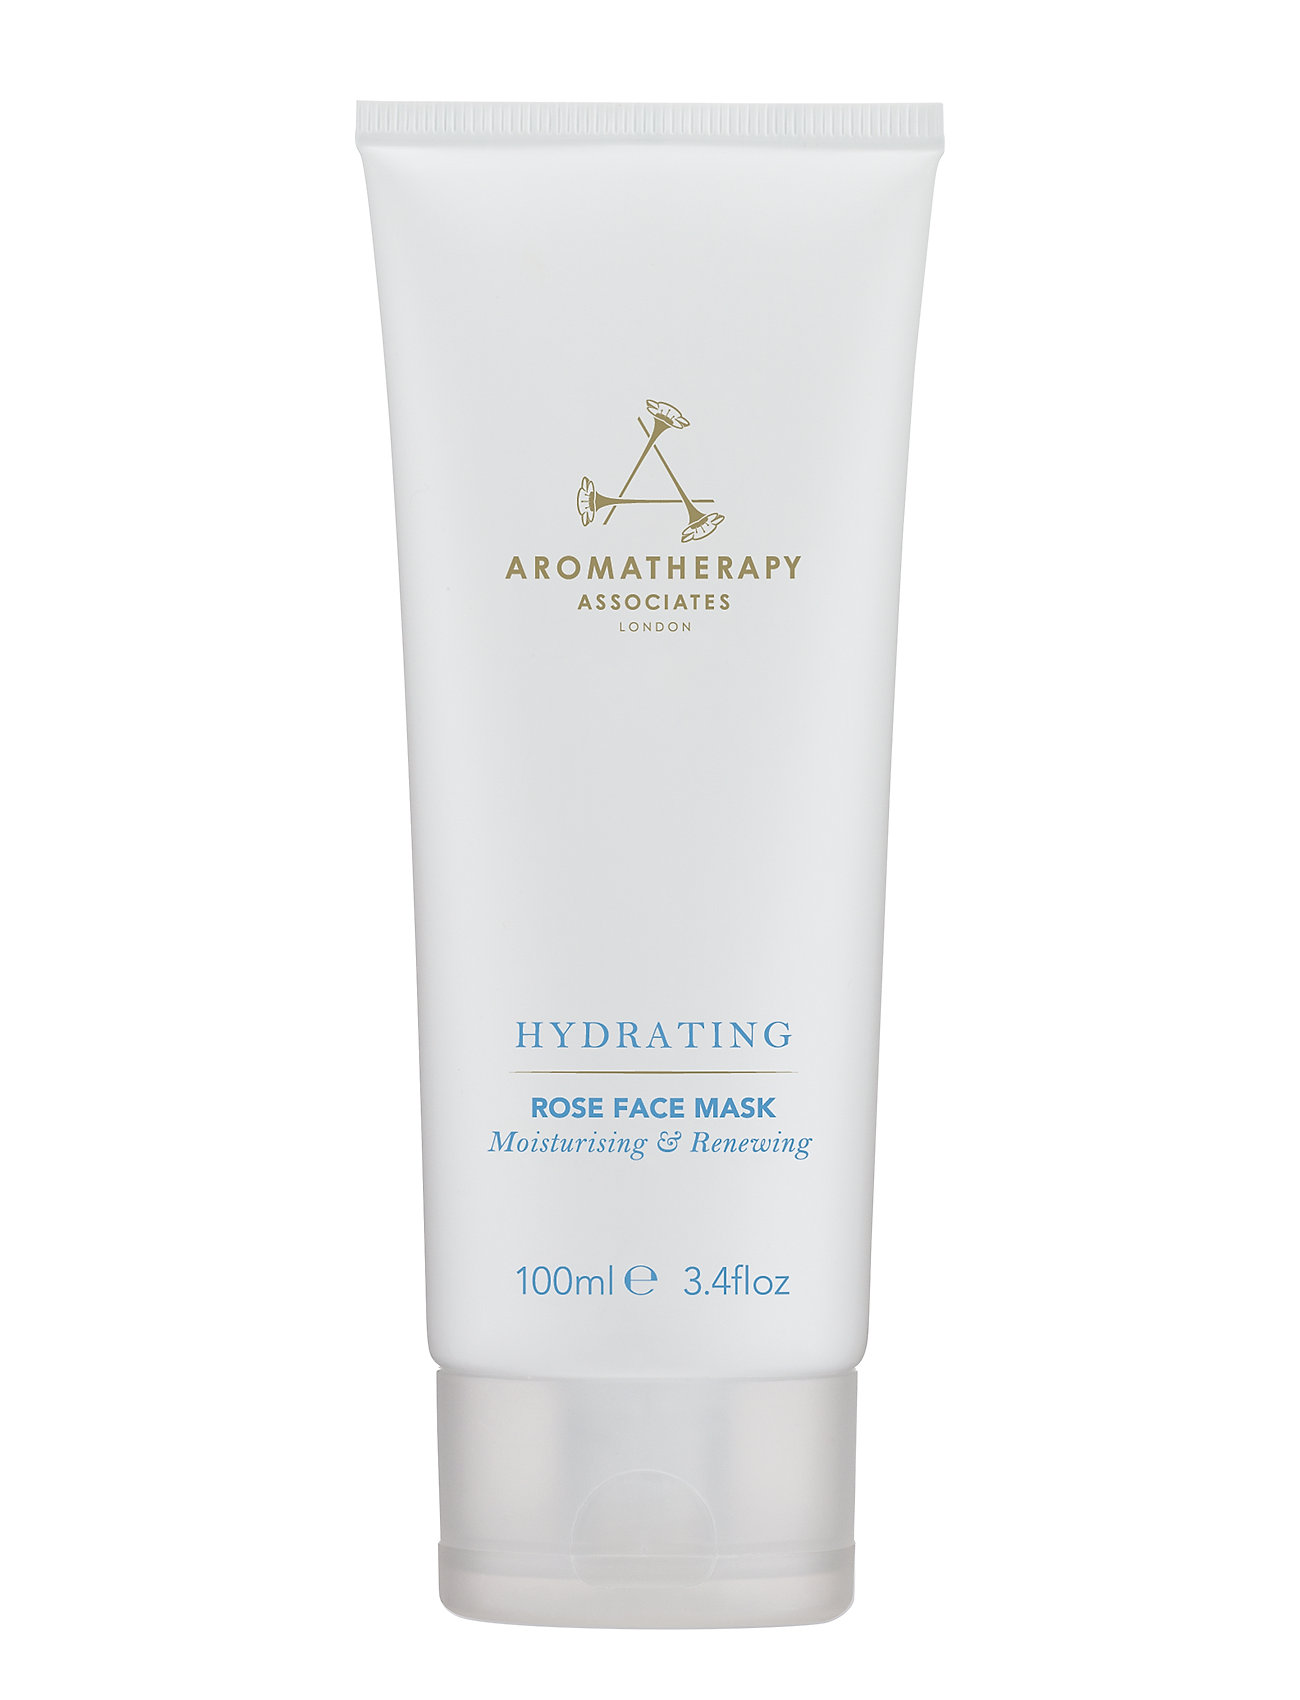 Image of Hydrating Rose Face Mask Beauty WOMEN Skin Care Face Face Masks Nude Aromatherapy Associates (3082978097)